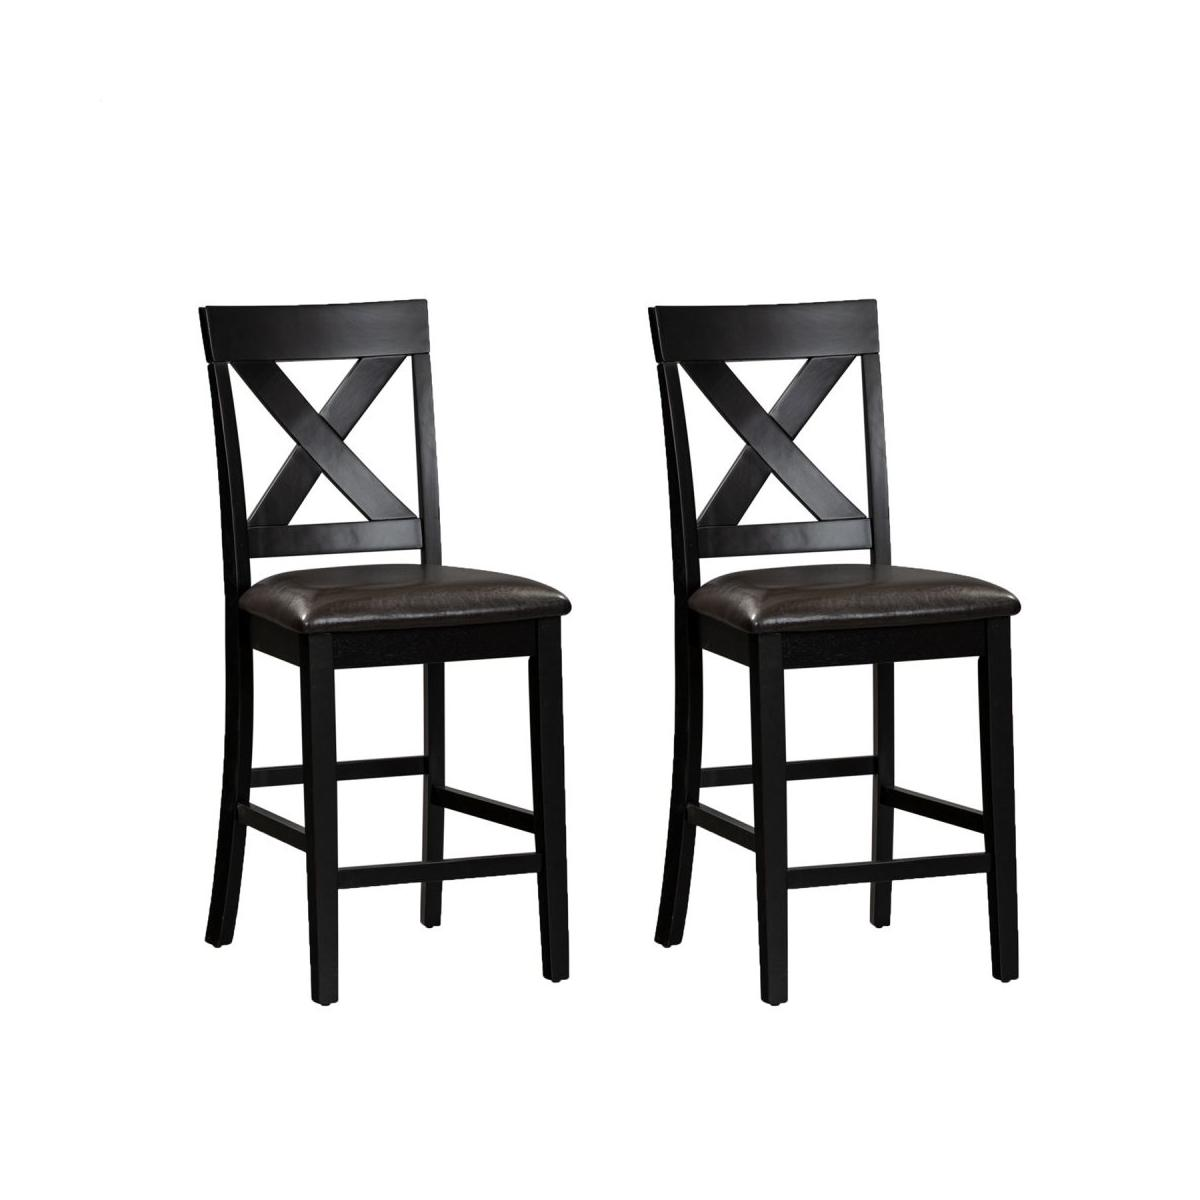 X Back Counter Chair- Pack of 2